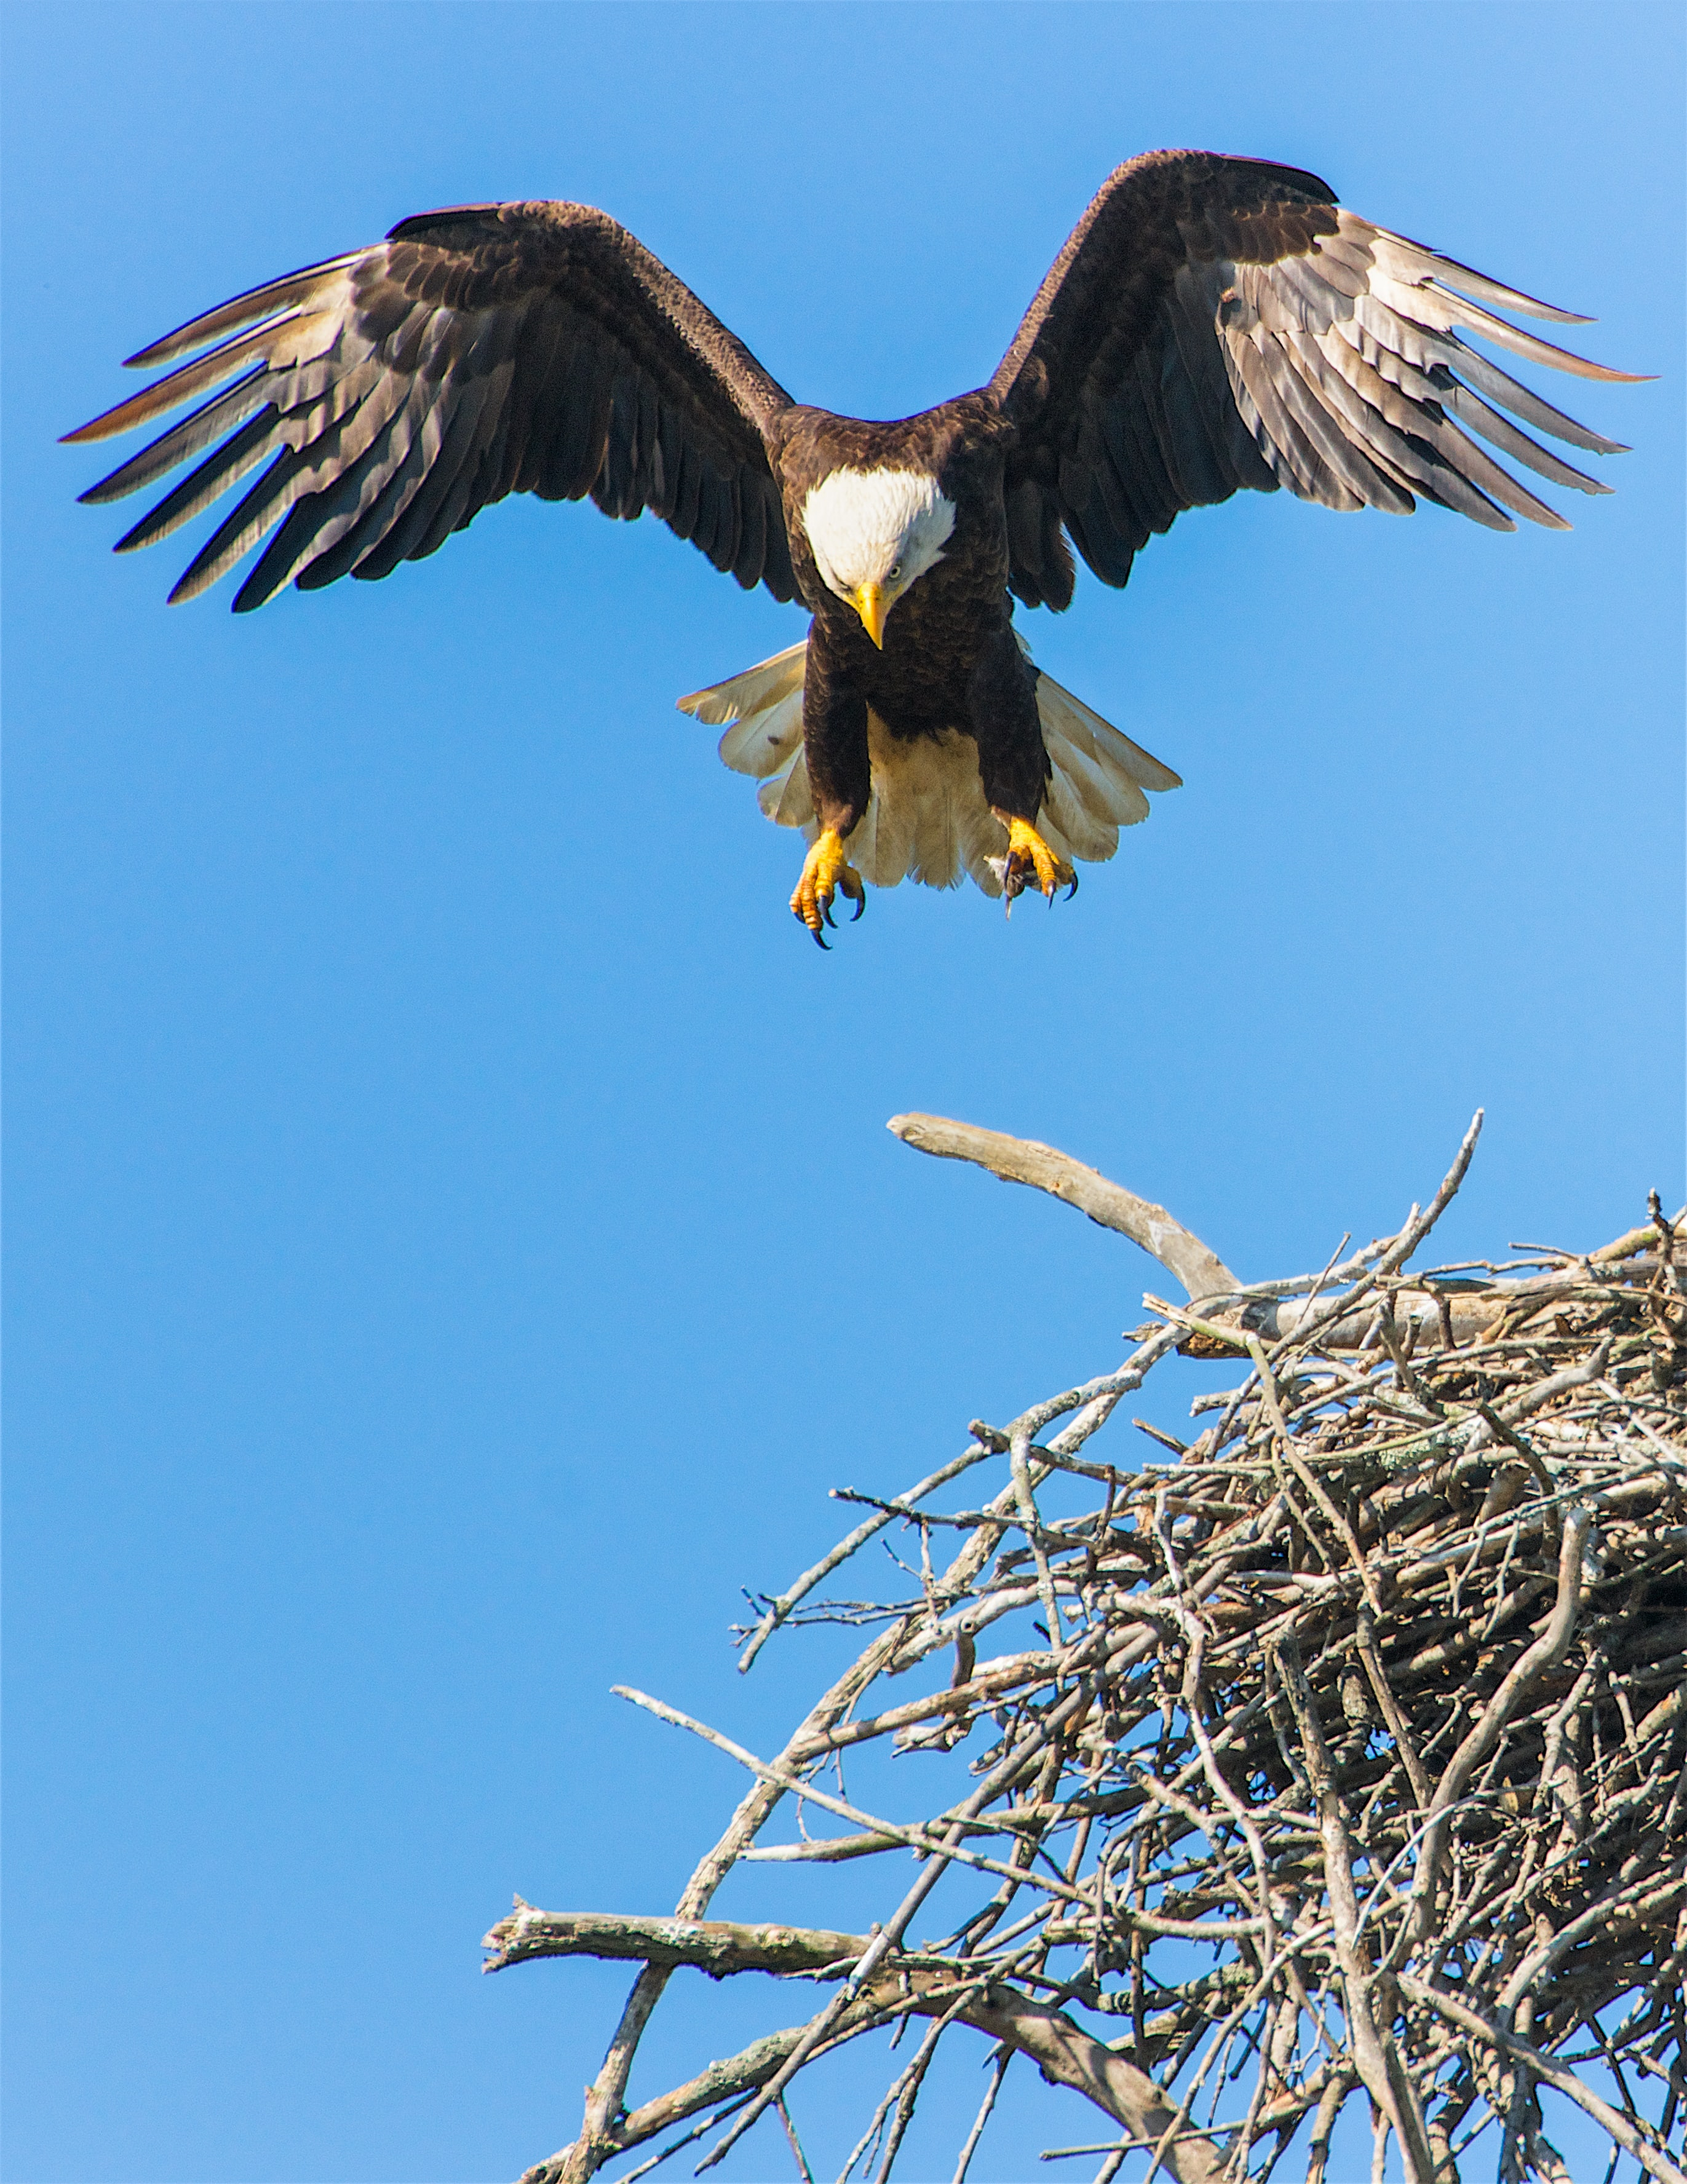 bald eagle flap its wing from nest